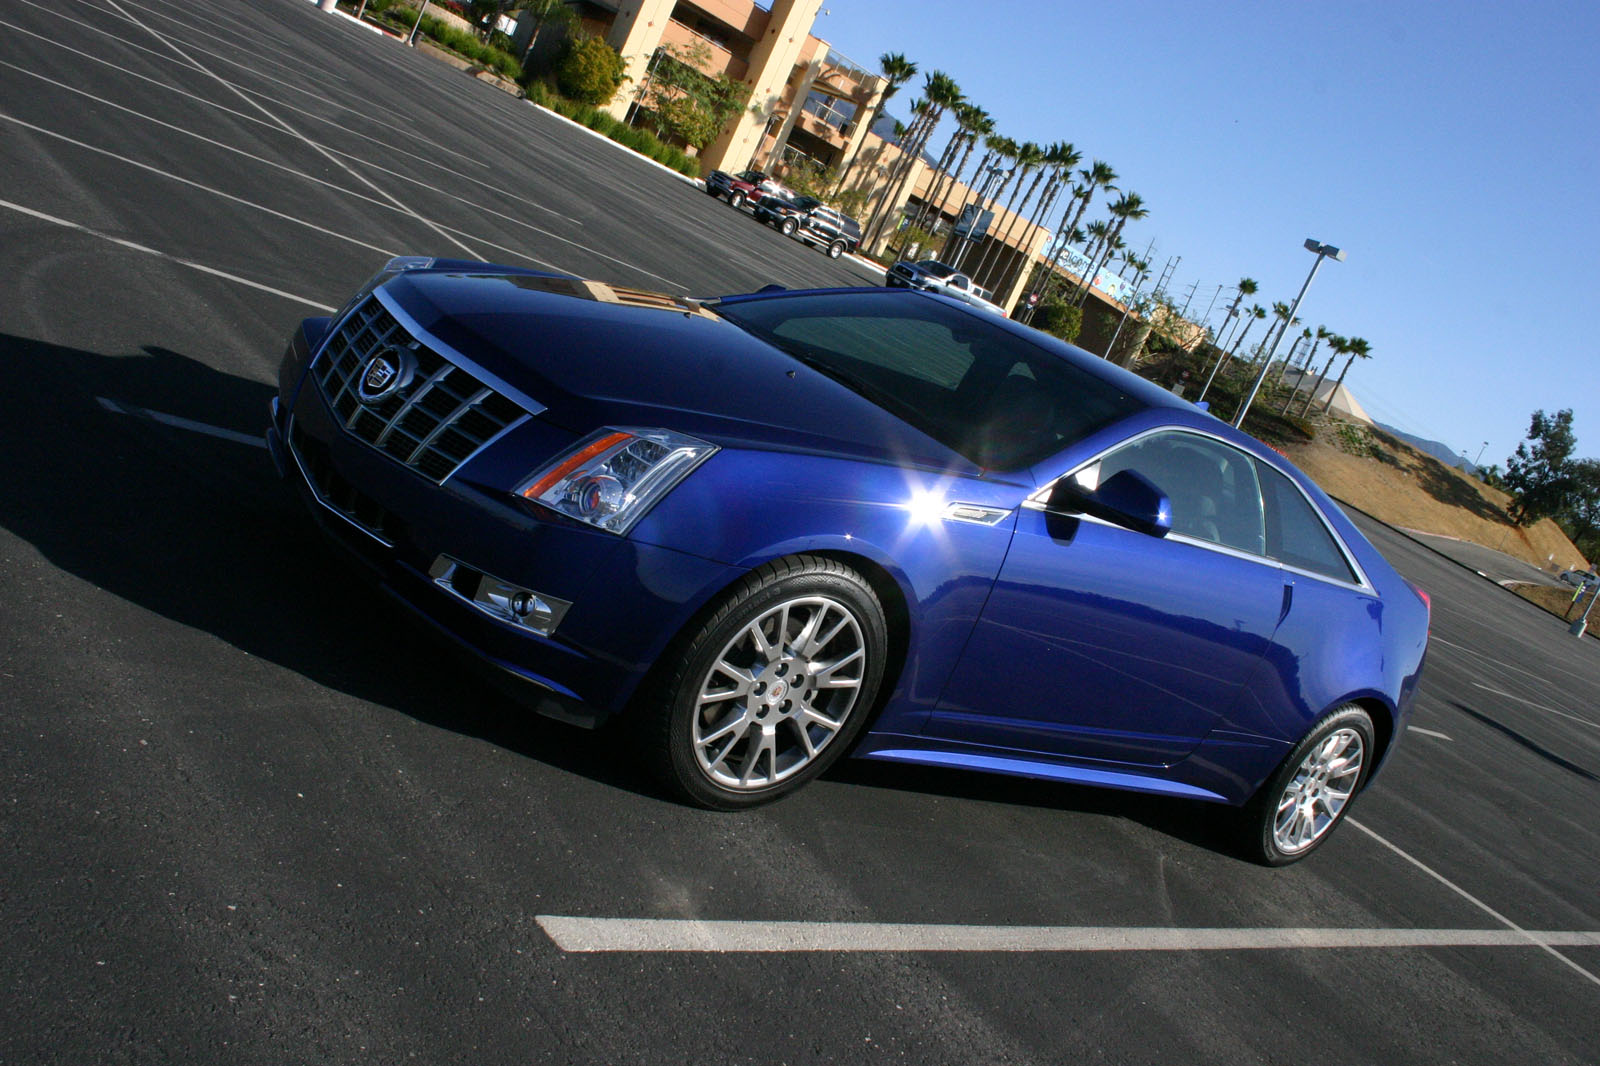 2012 Cadillac Cts Coupe #11